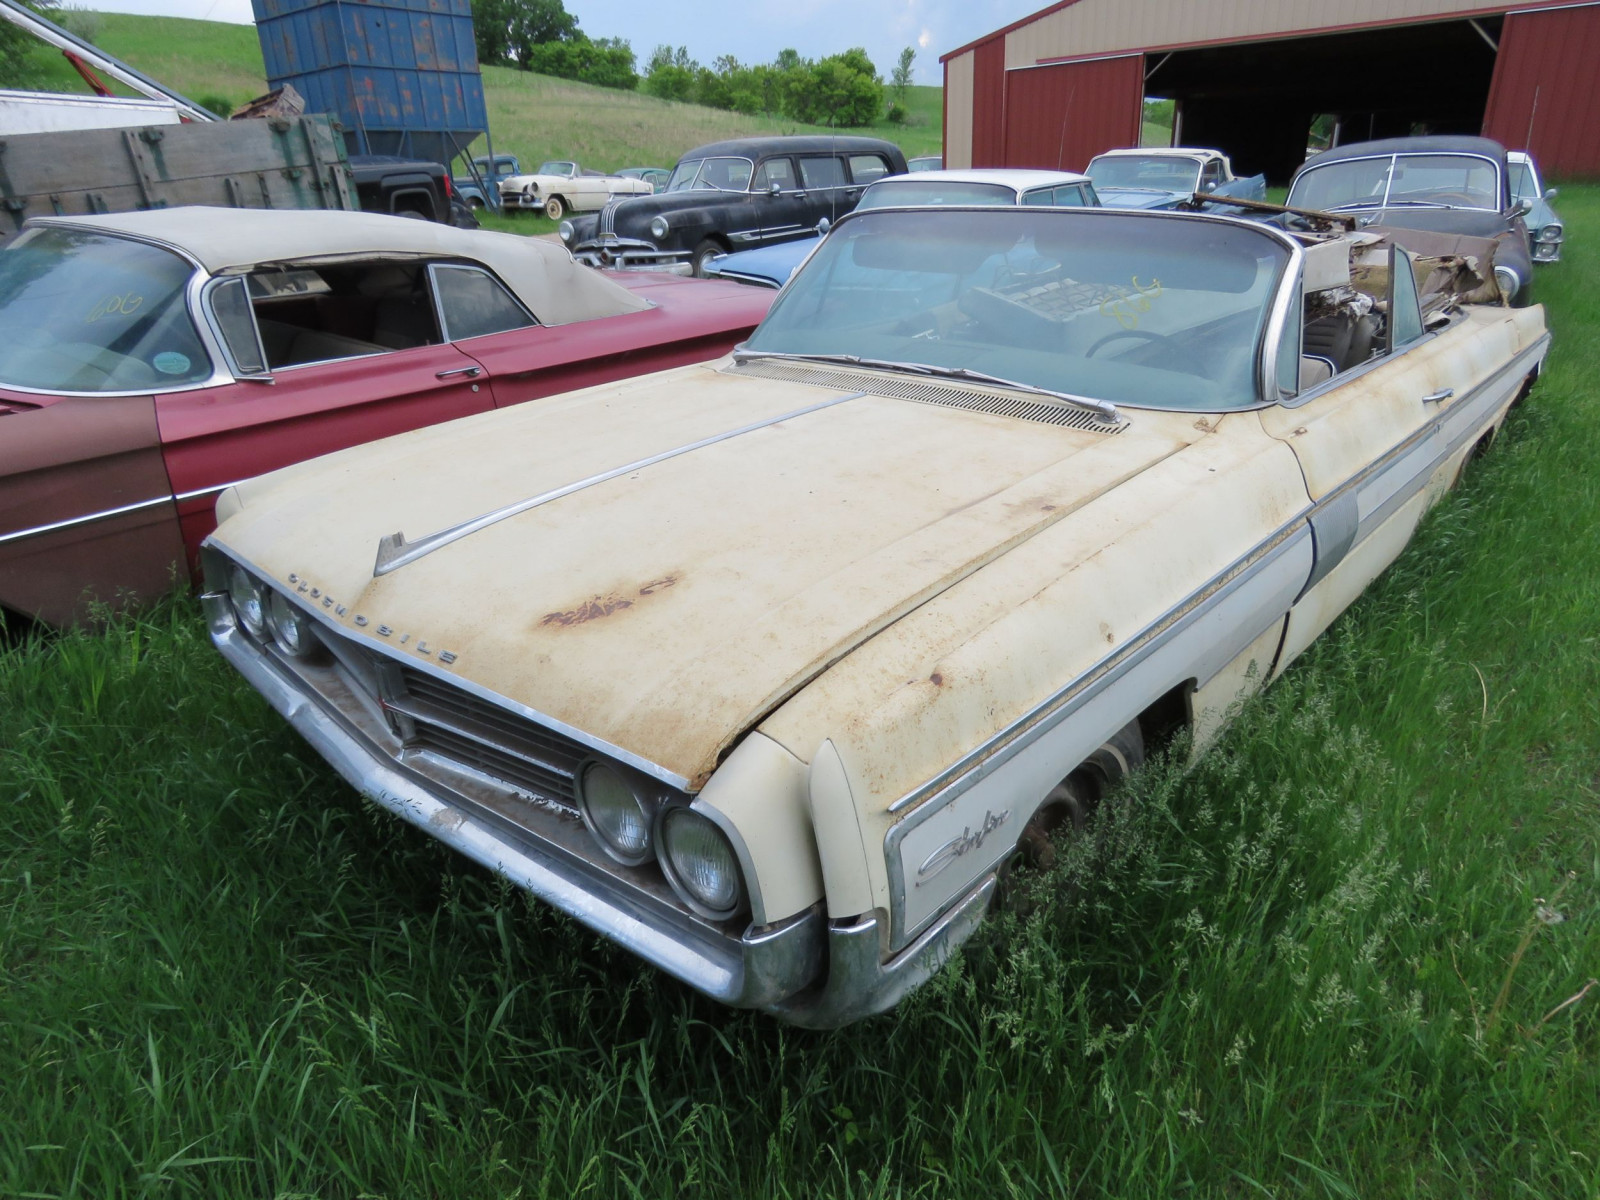 Oldsmobile Starfire Convertible for Project or Parts - Image 1